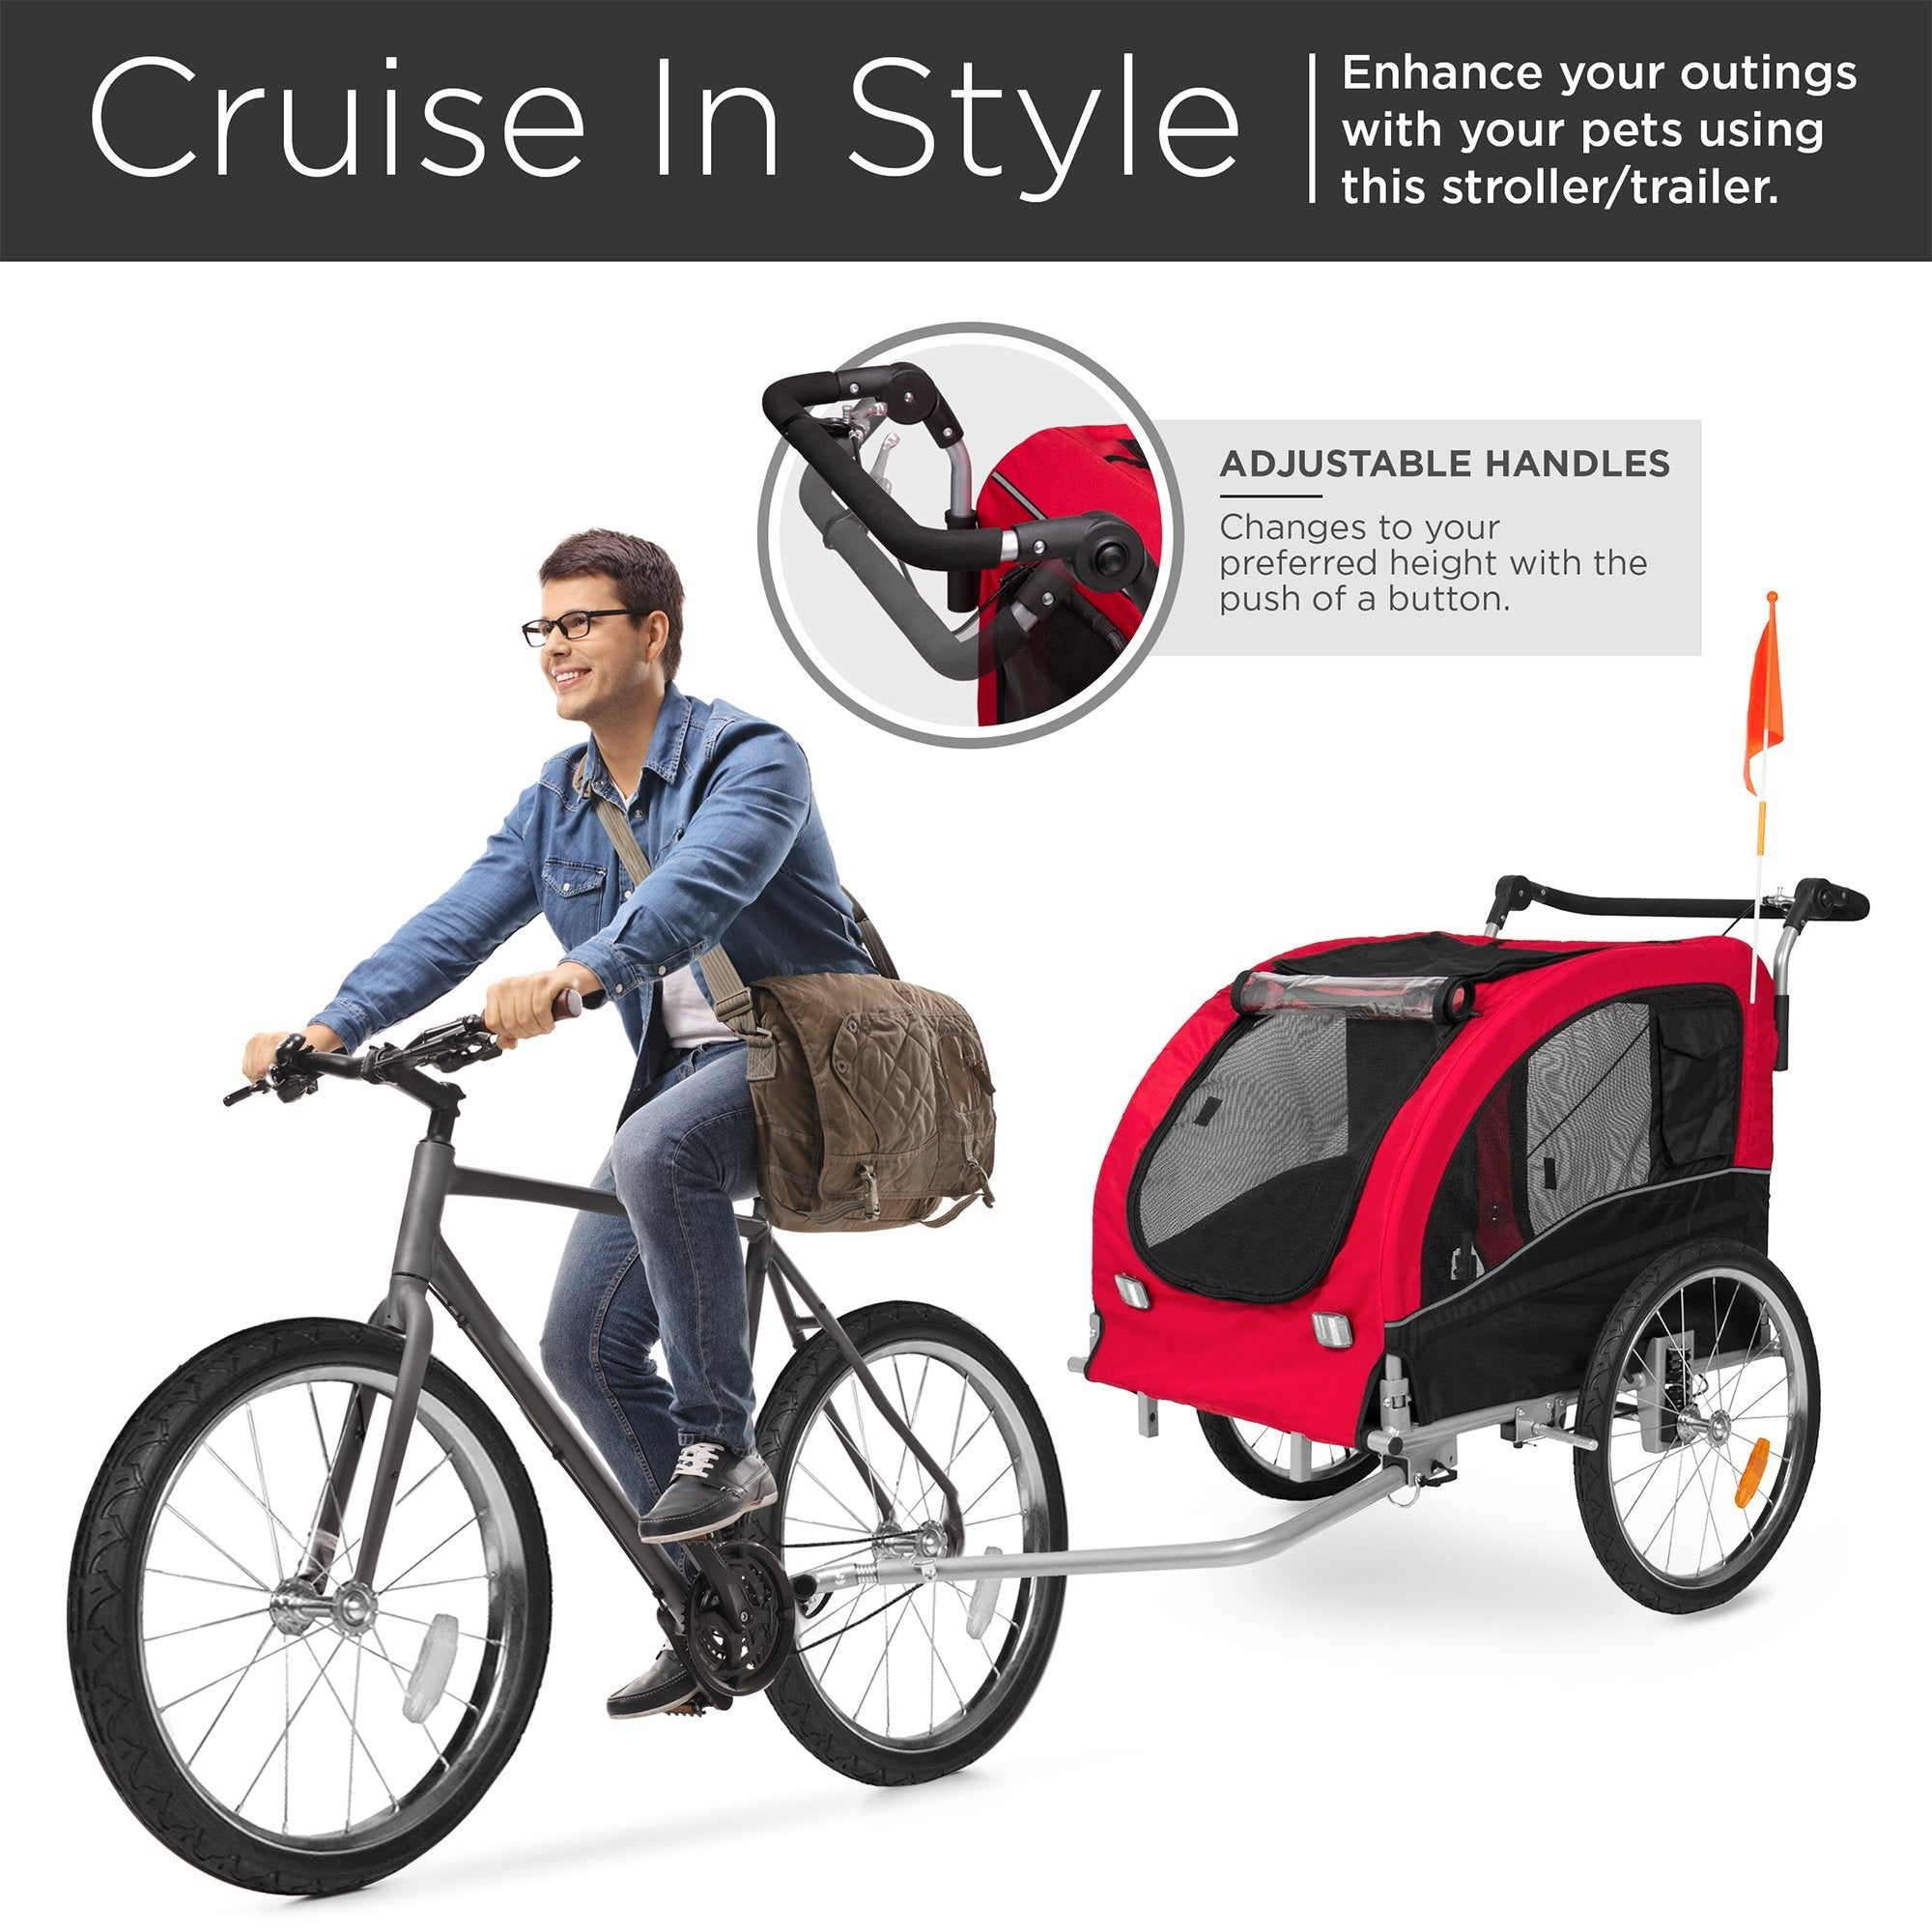 2-in-1 Pet Stroller and Trailer